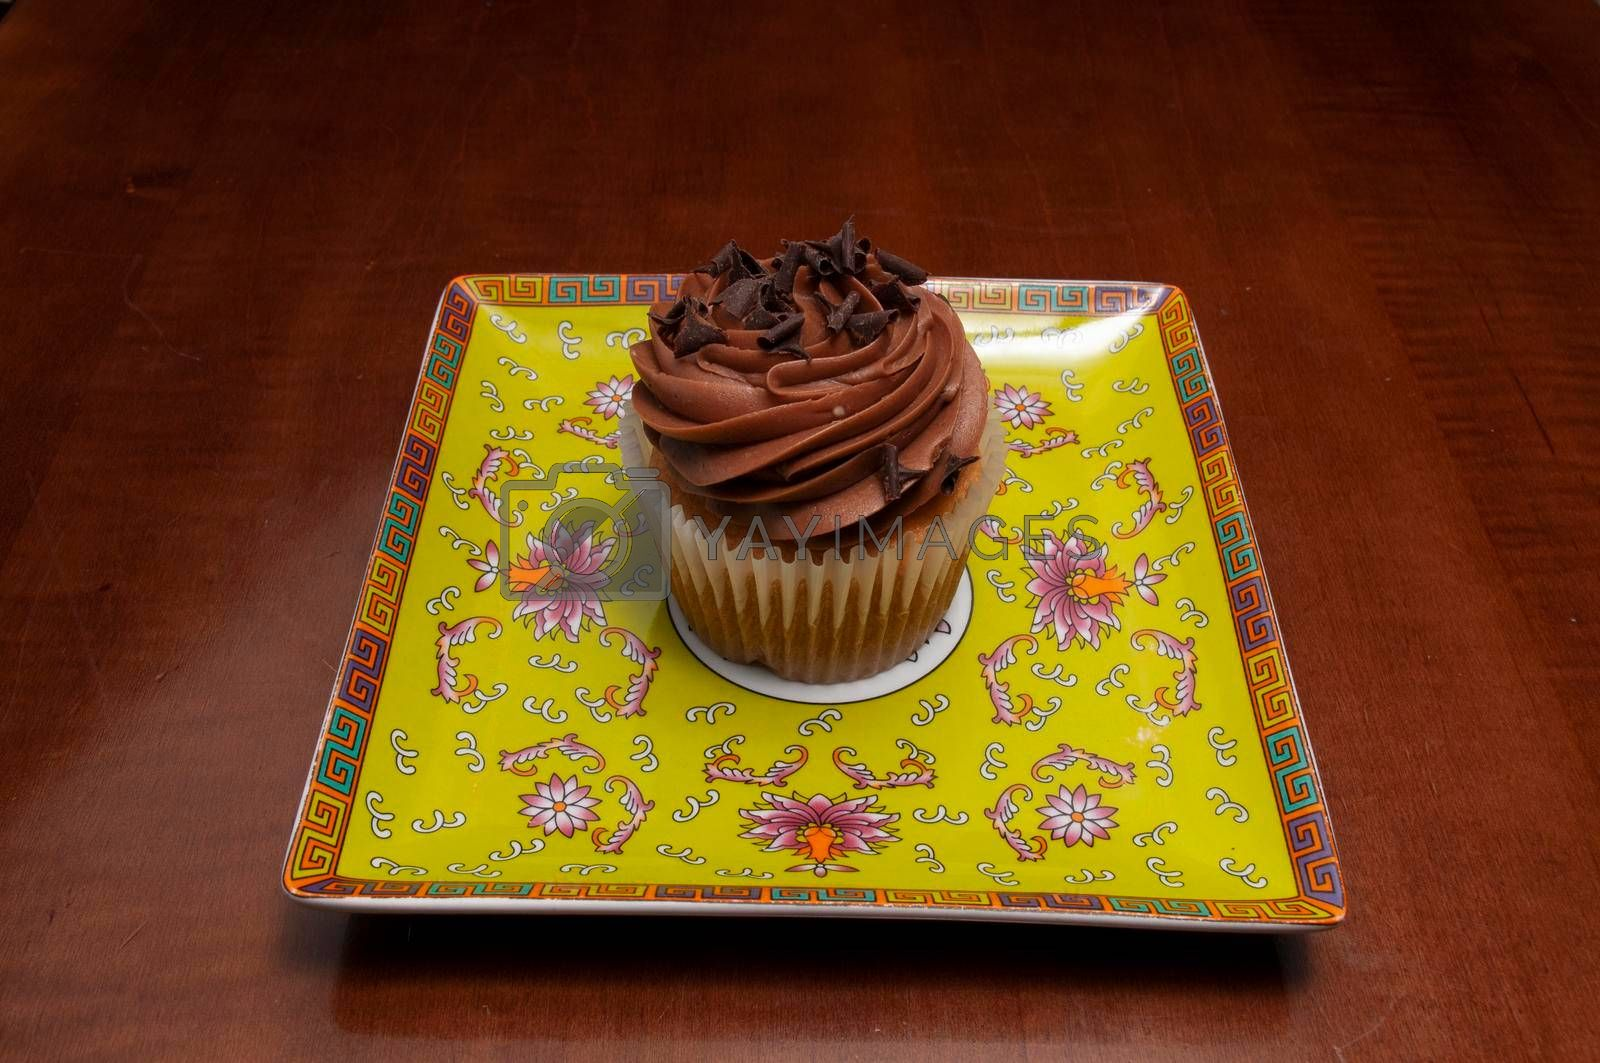 Delicious bakery product known as the vanilla chocolate cupcake